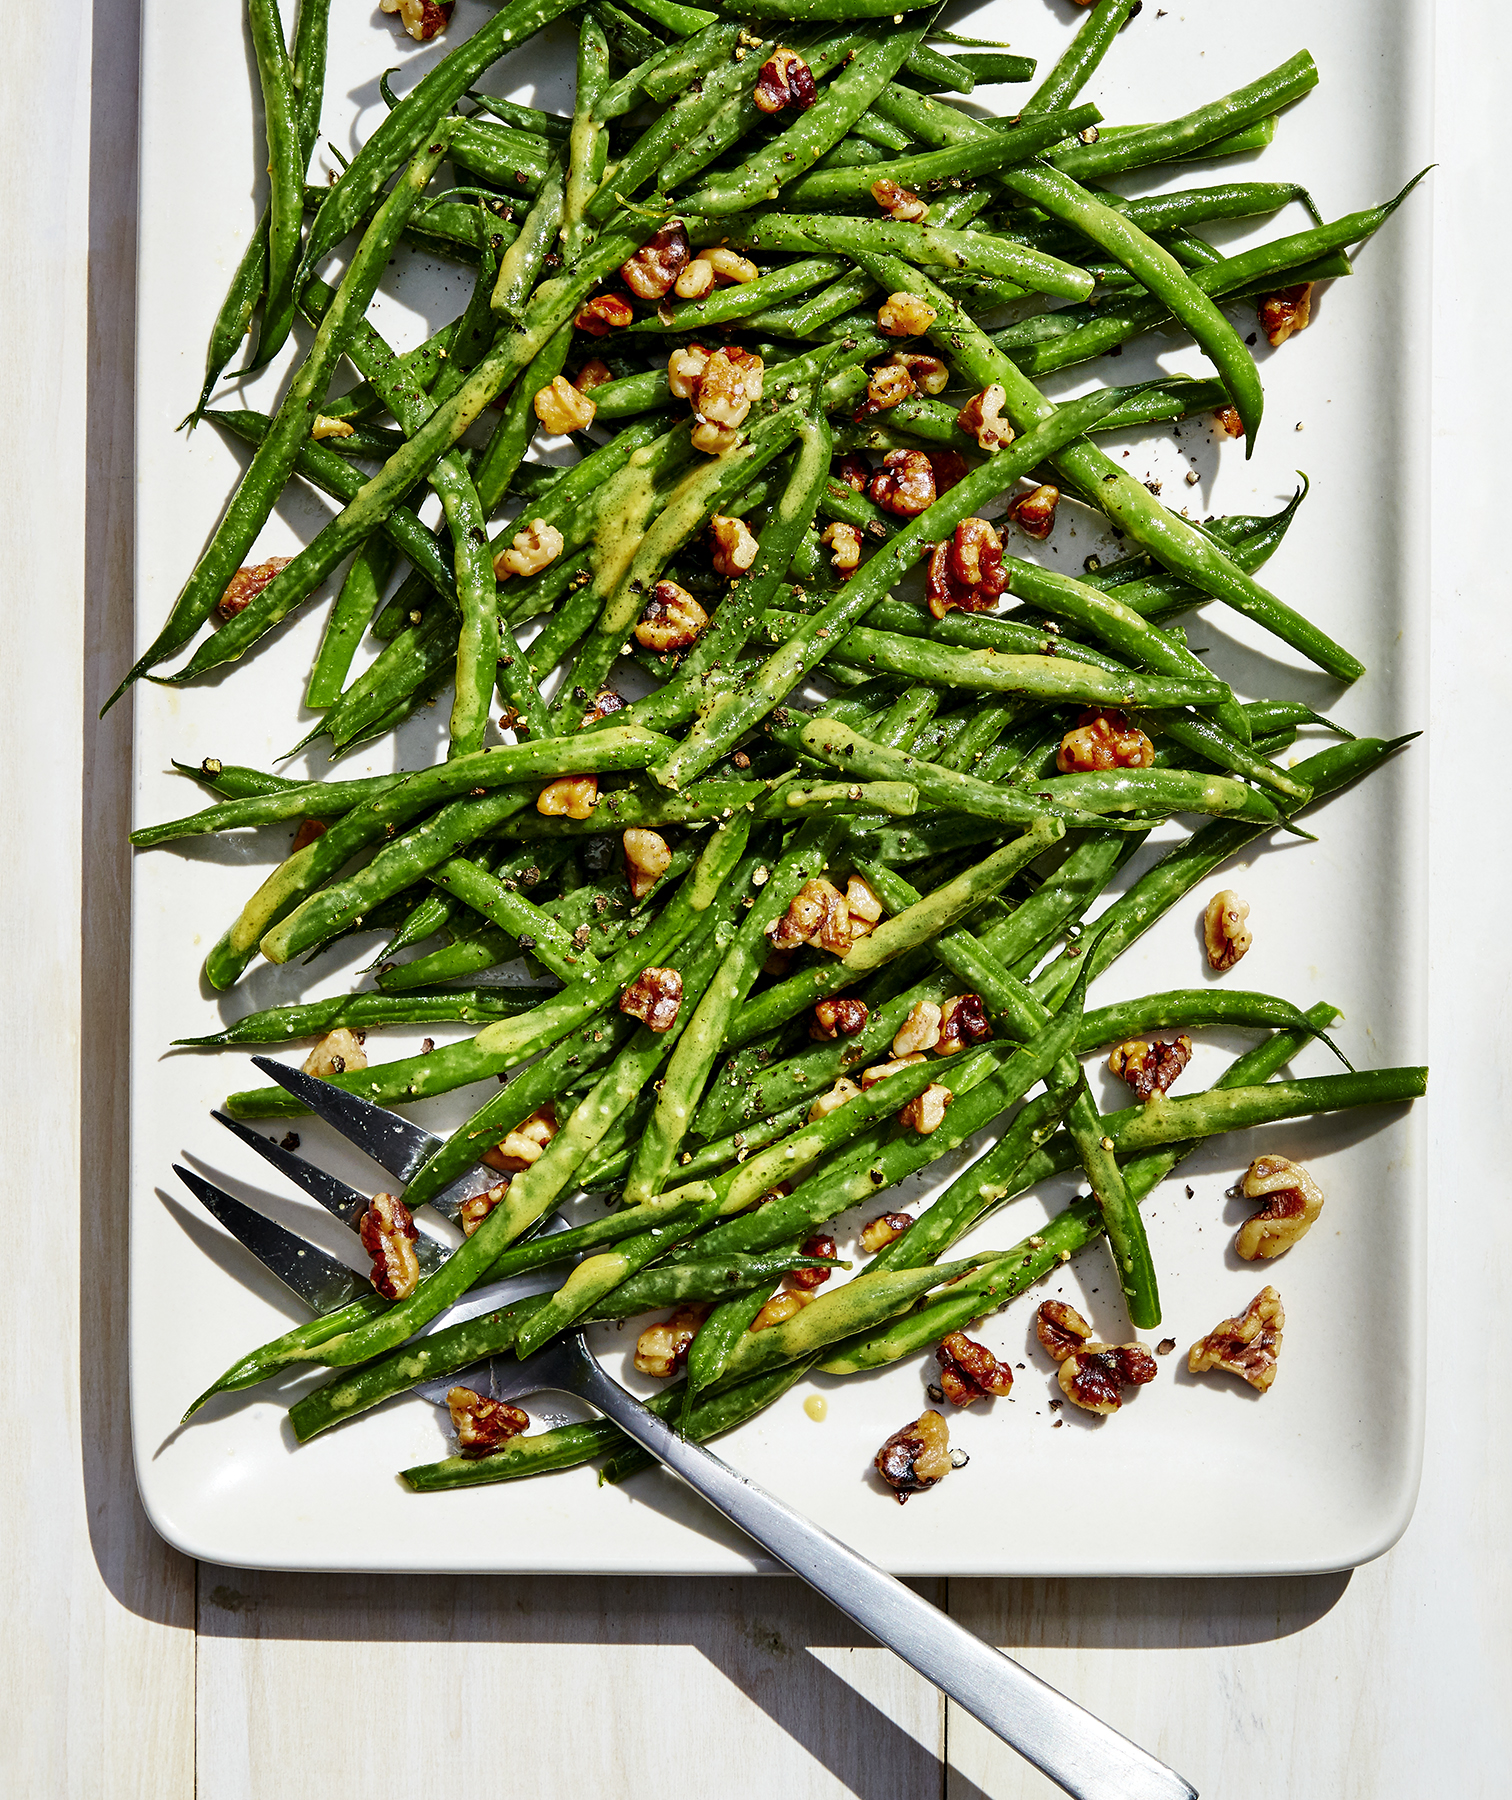 Green Beans With Miso, Mustard, and Walnuts